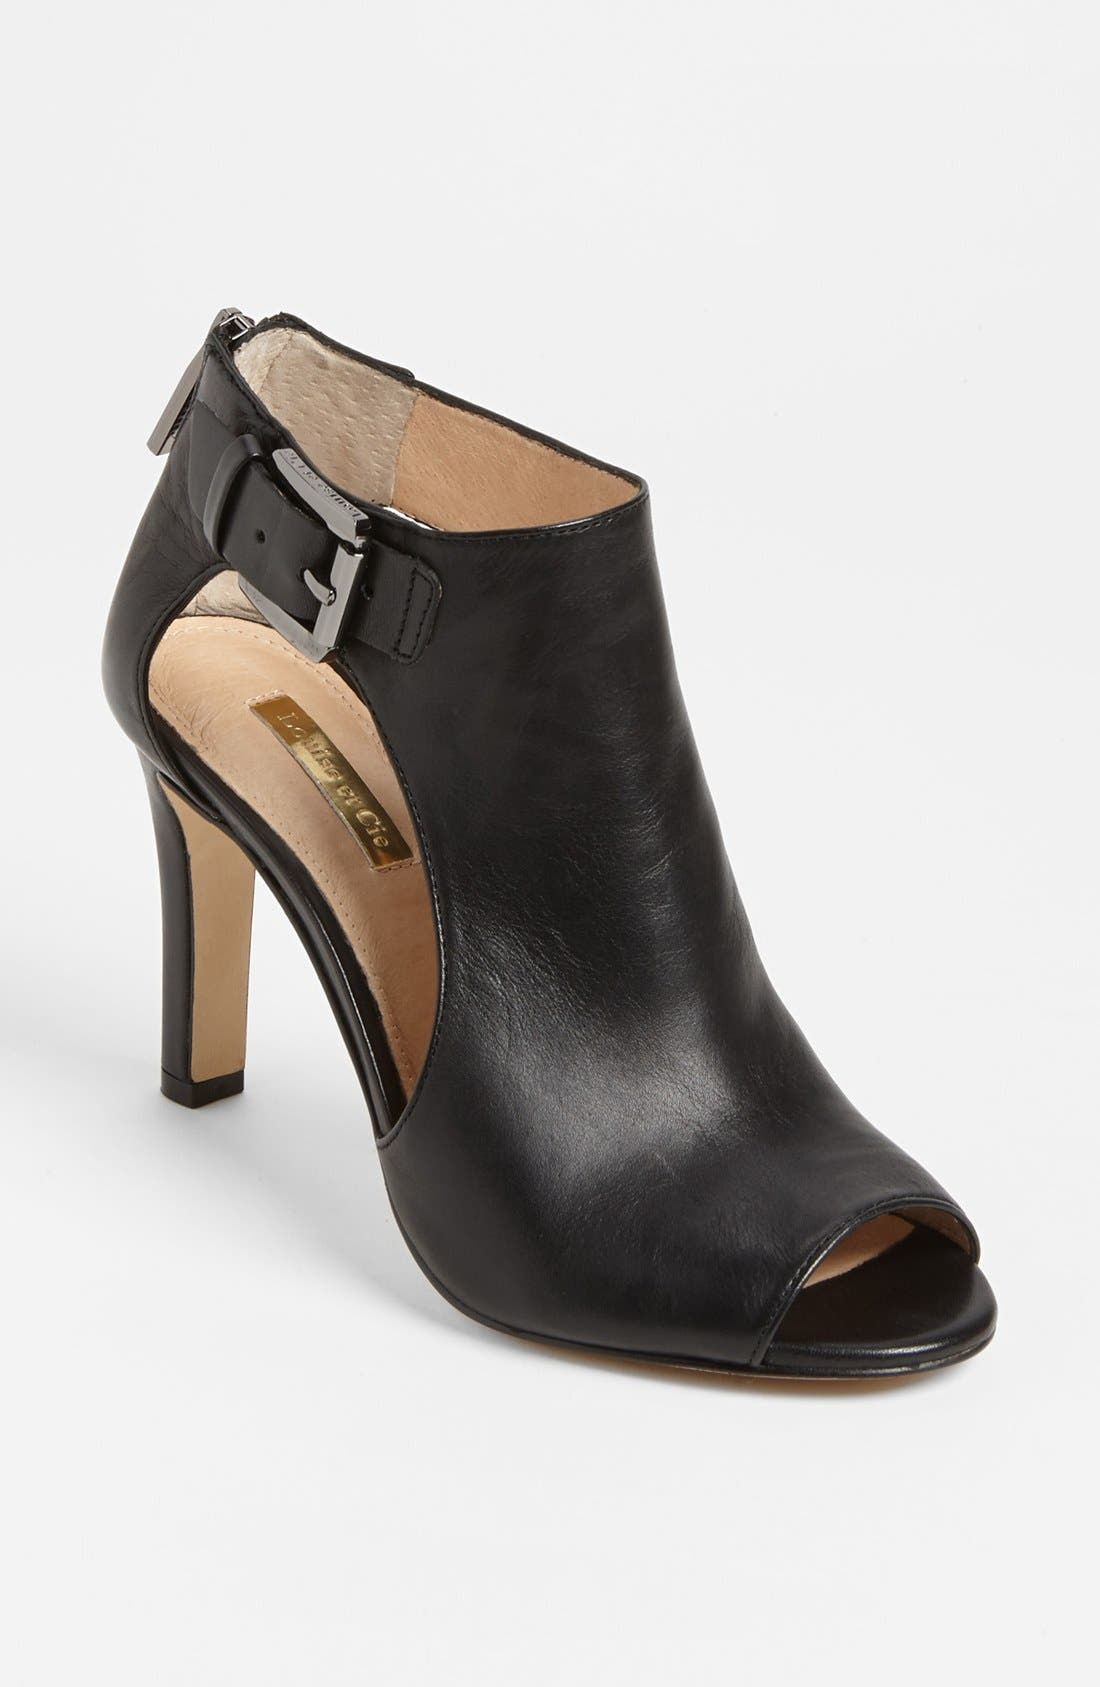 Alternate Image 1 Selected - Louise et Cie 'Olivia' Bootie (Nordstrom Exclusive)(Online Only Color)